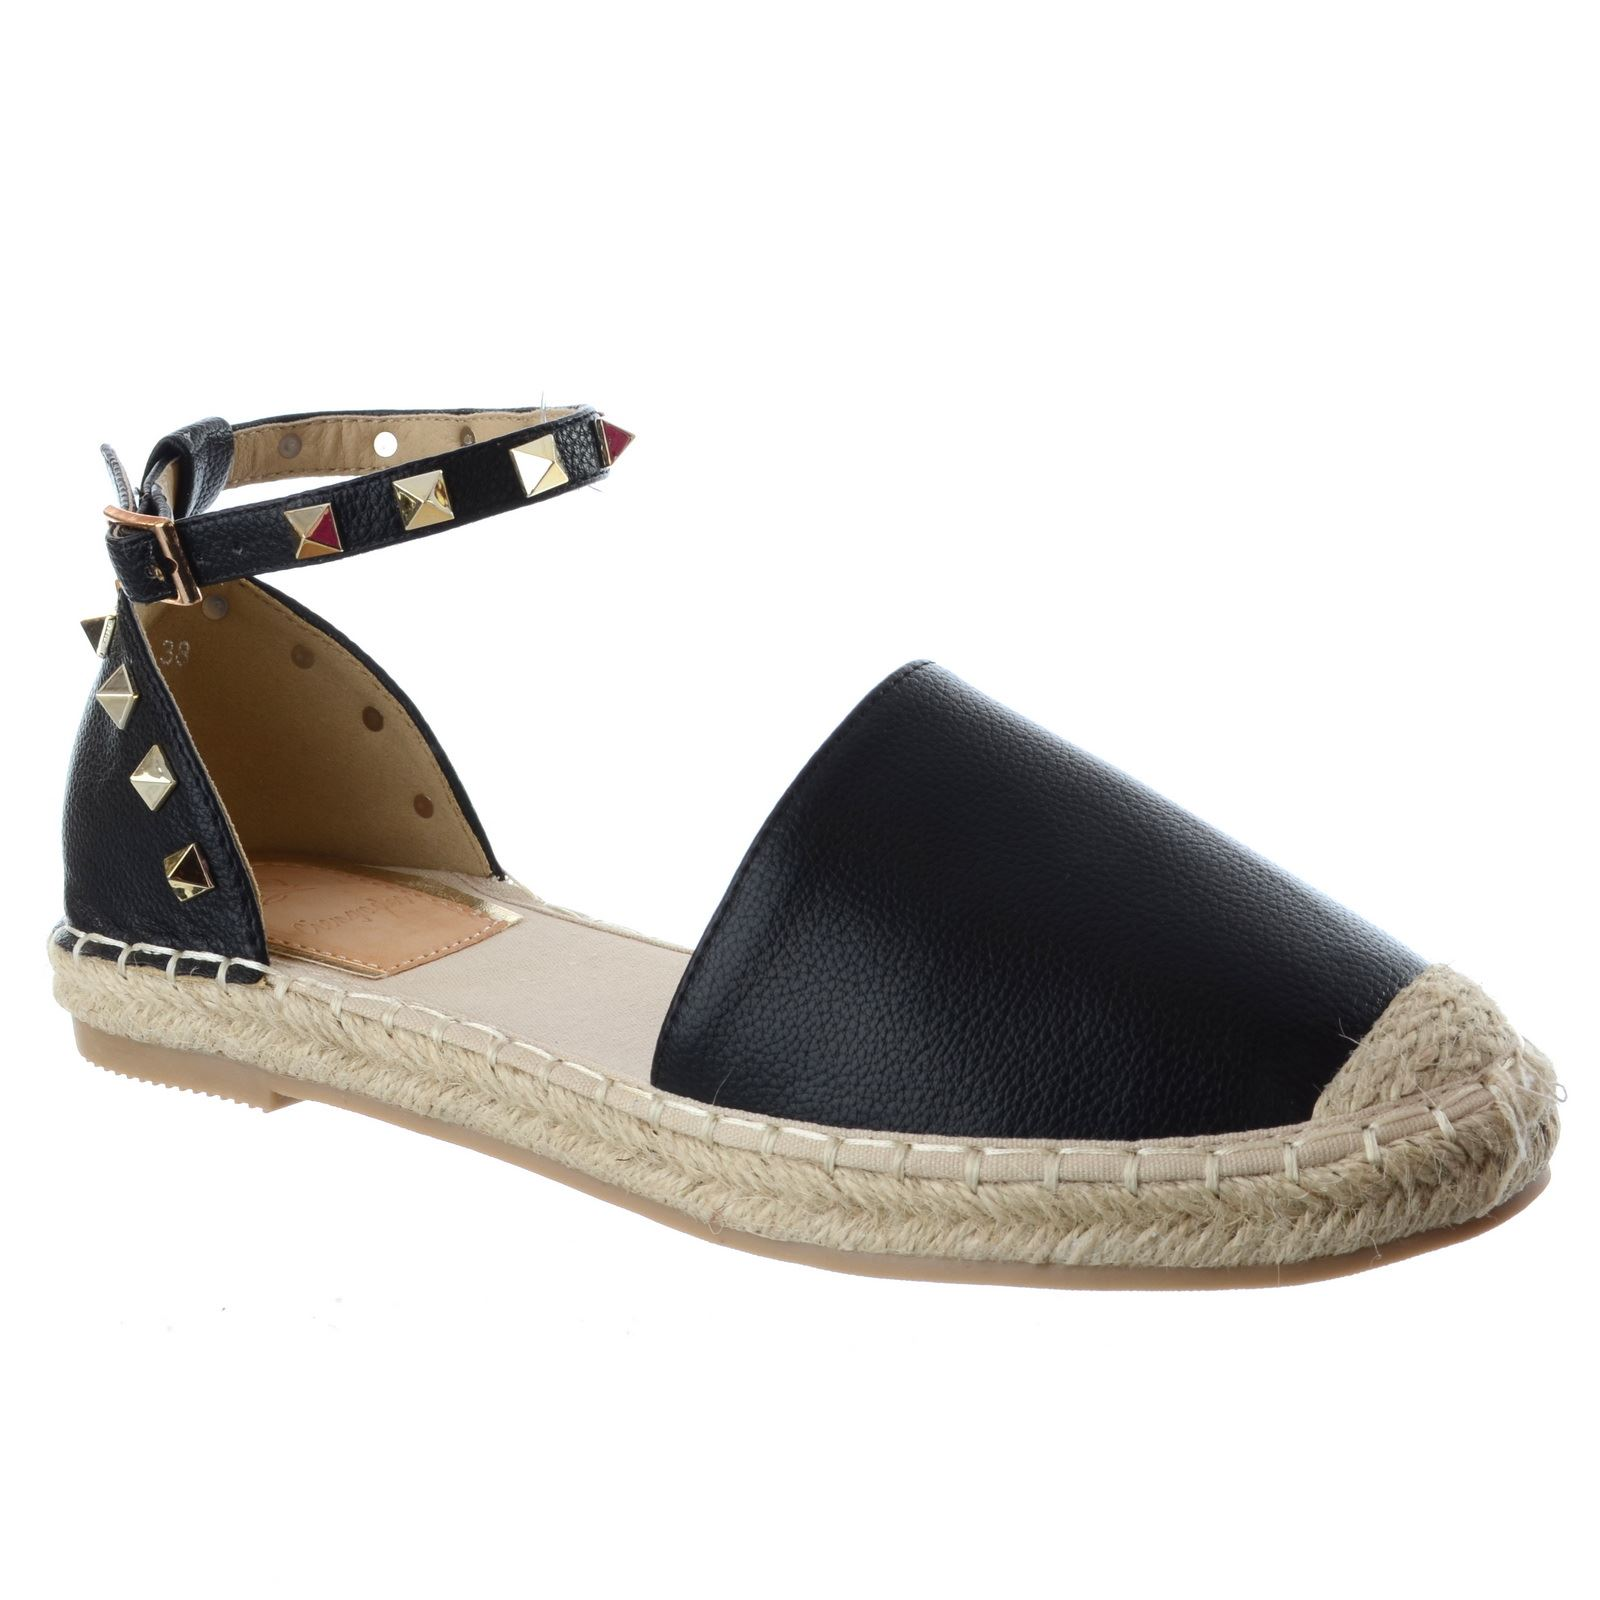 WOMENS LADIES FLAT LOW HEEL ANKLE STRAP STUDDED SUMMER ...